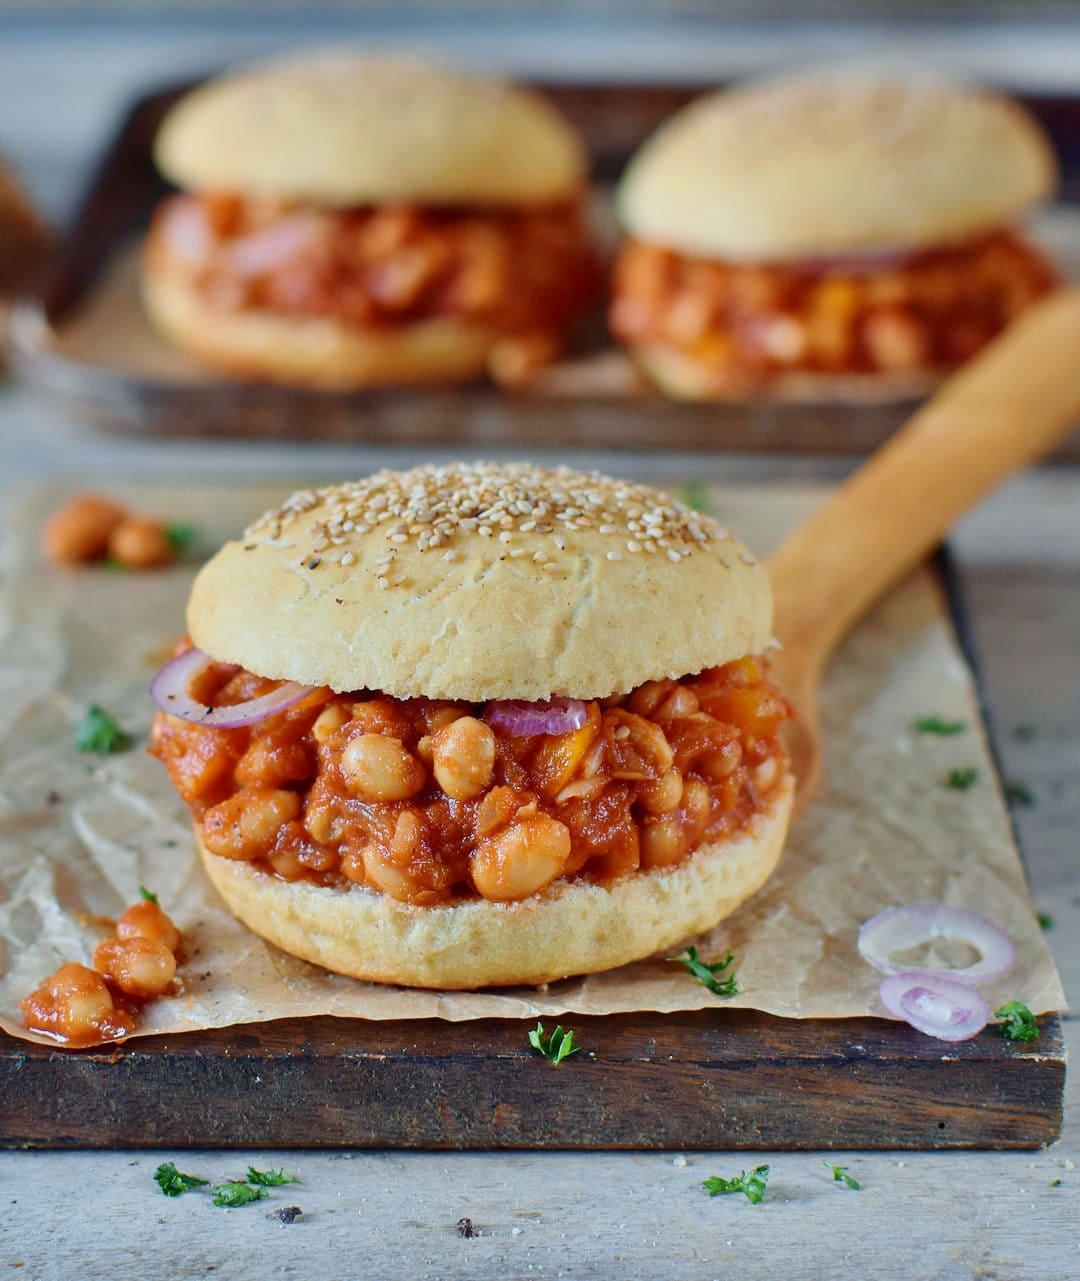 vegan sloppy joes recipe with gluten-free burger buns plant-based recipe